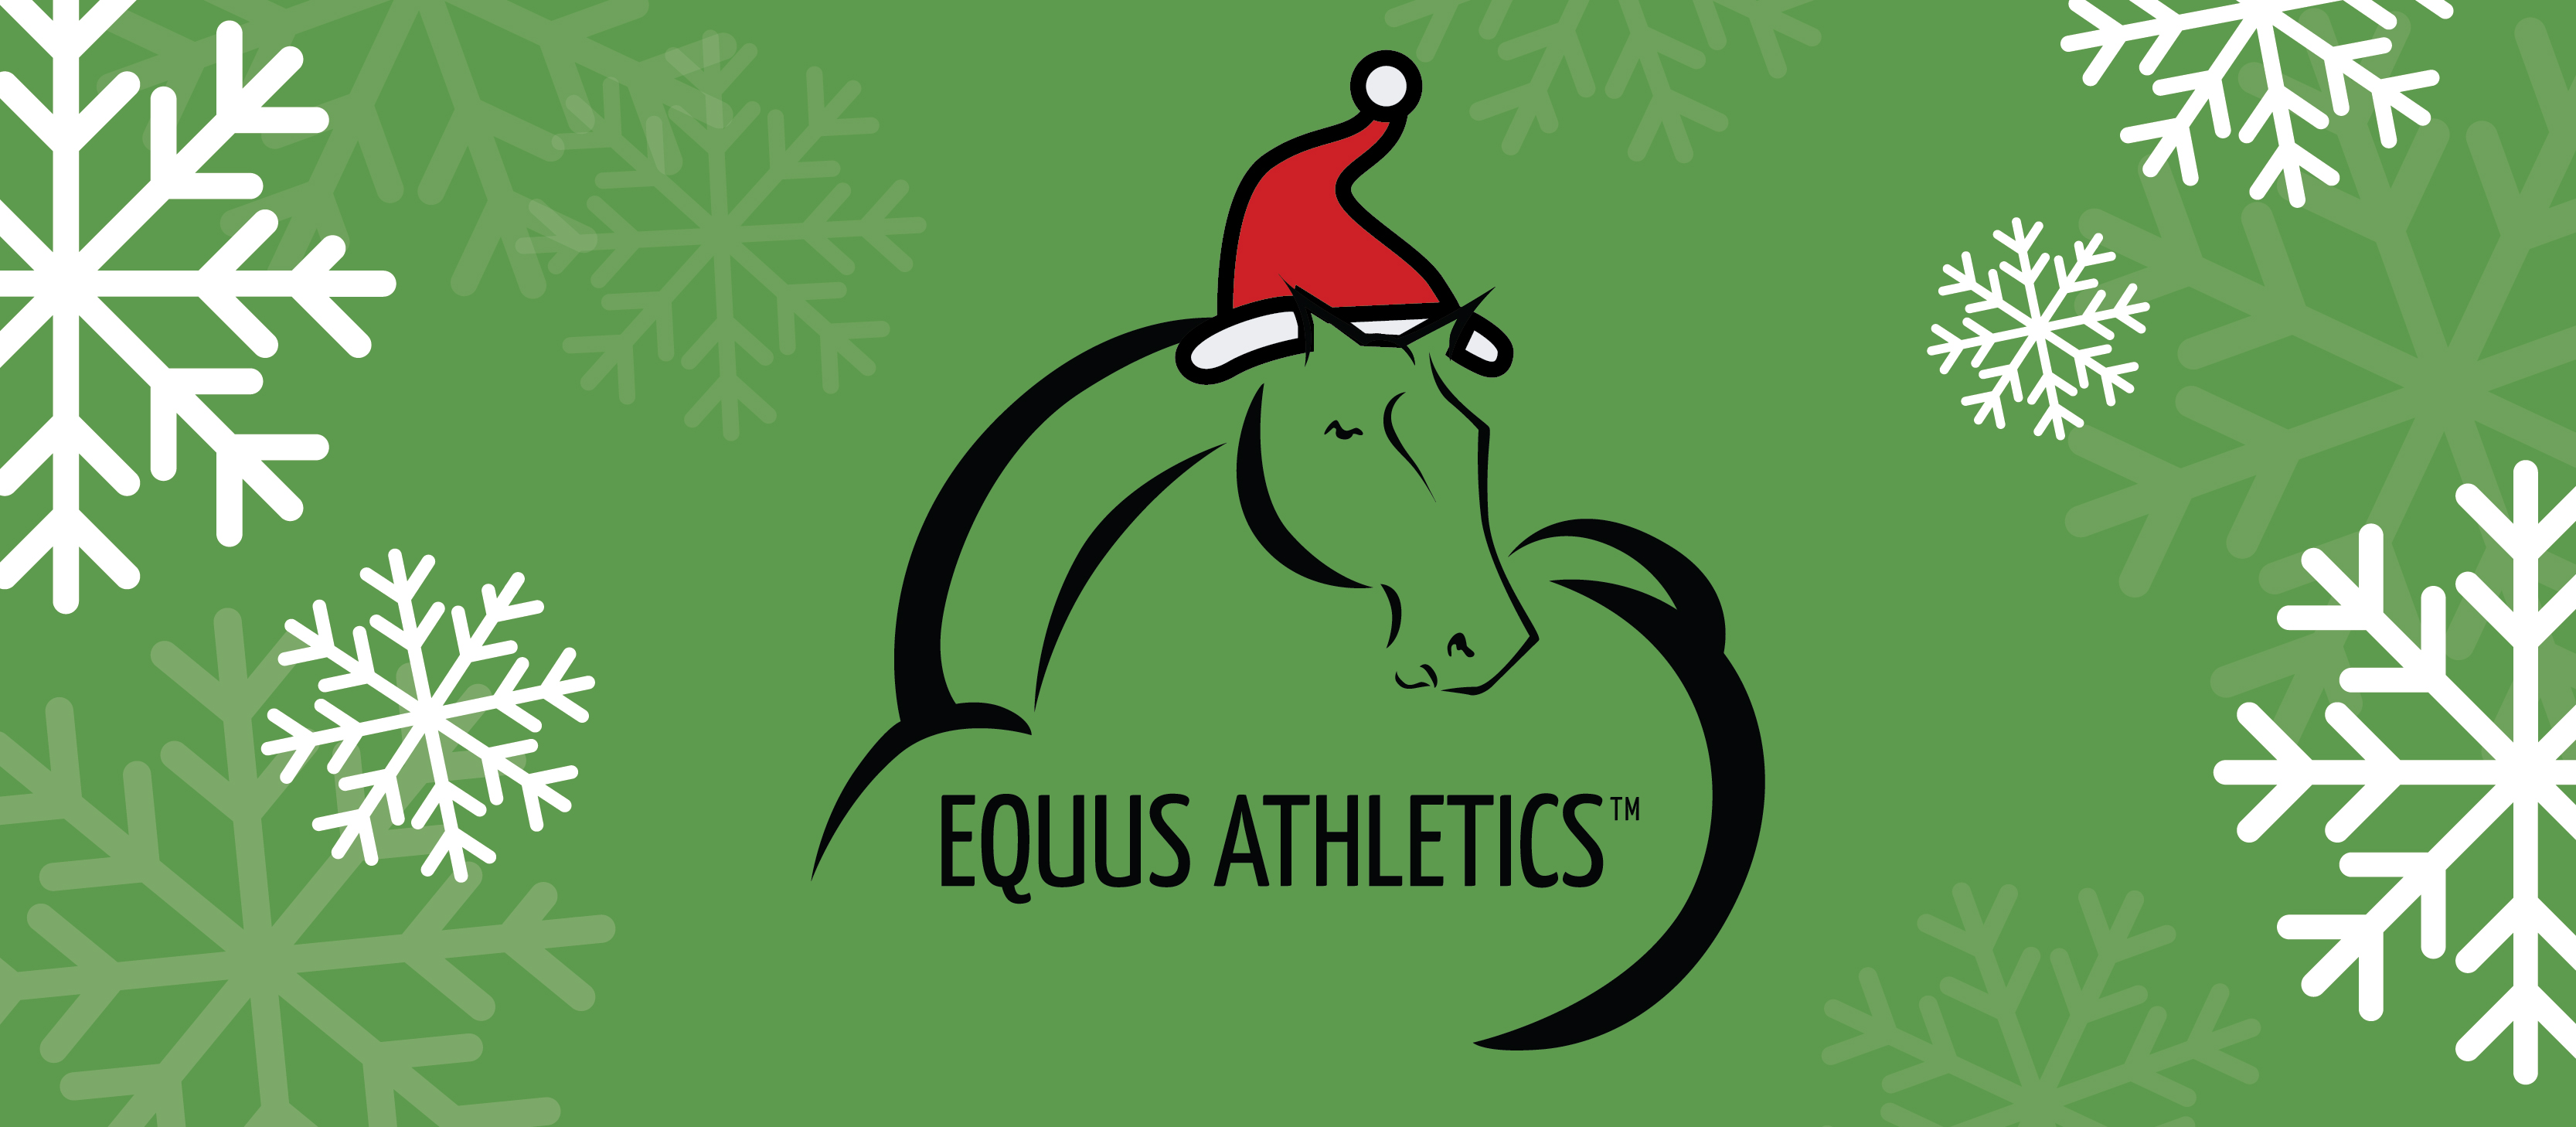 Equus_Athletics_Holiday_Facebook+Blog